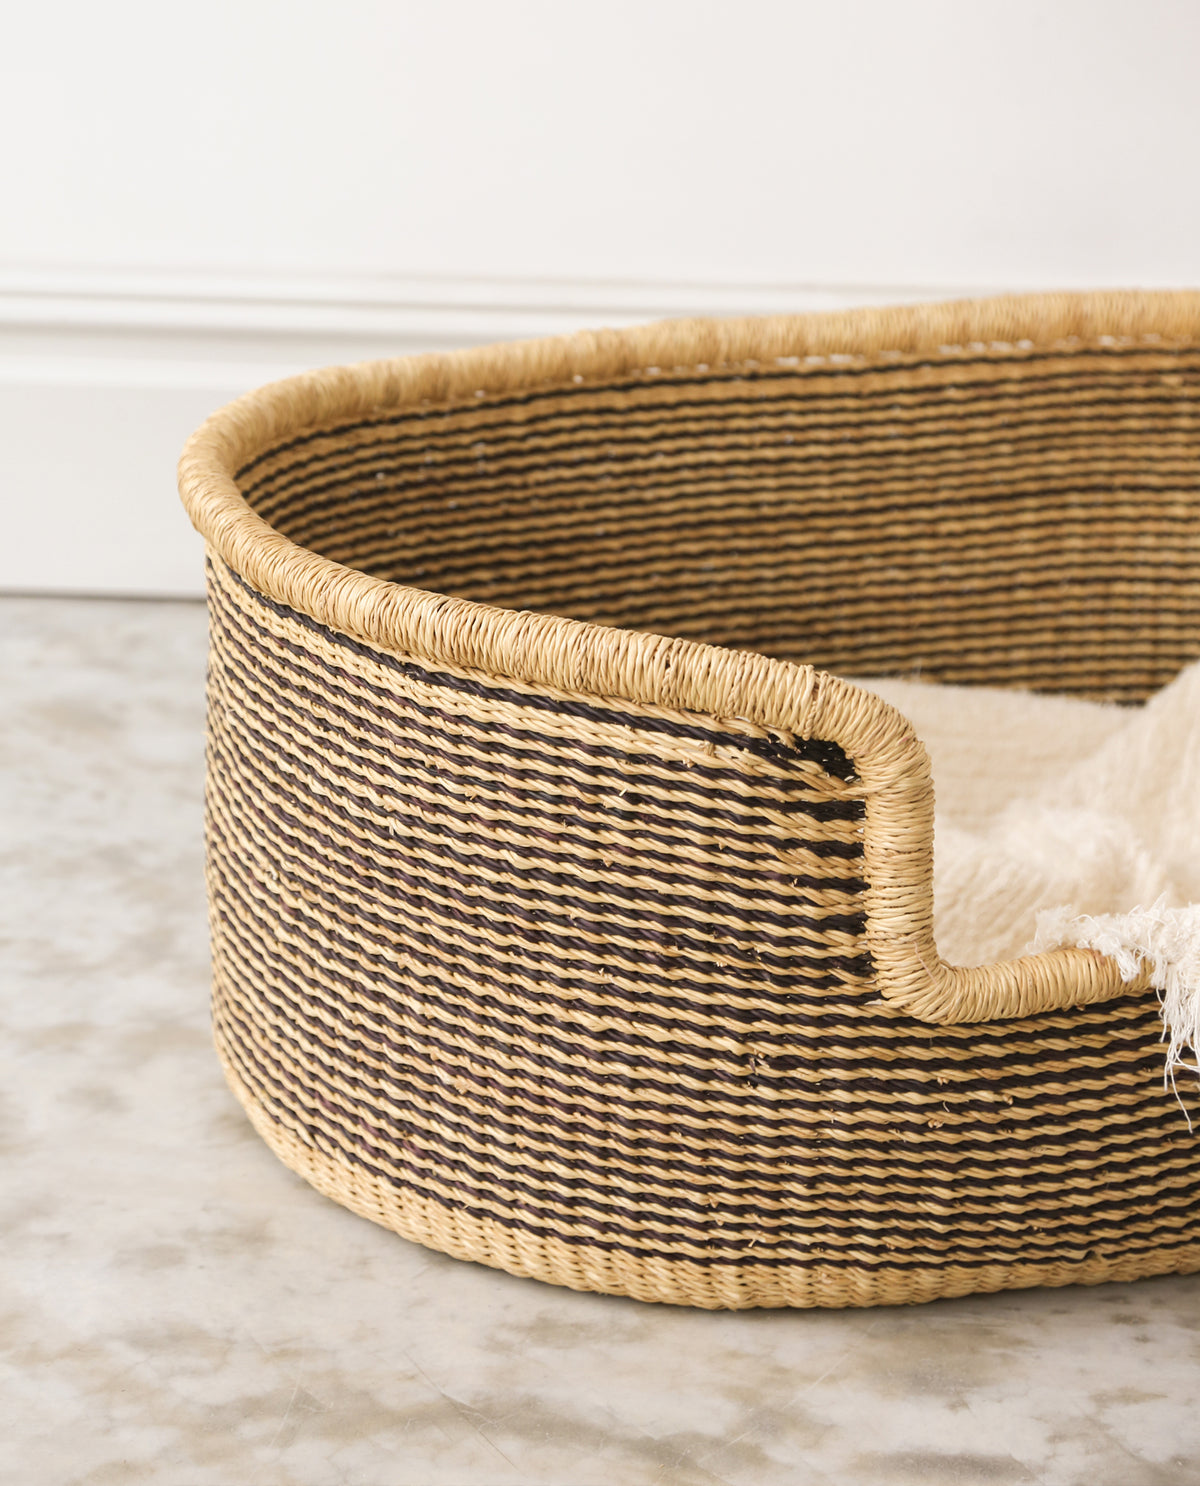 MINZI Handwoven Dog Basket